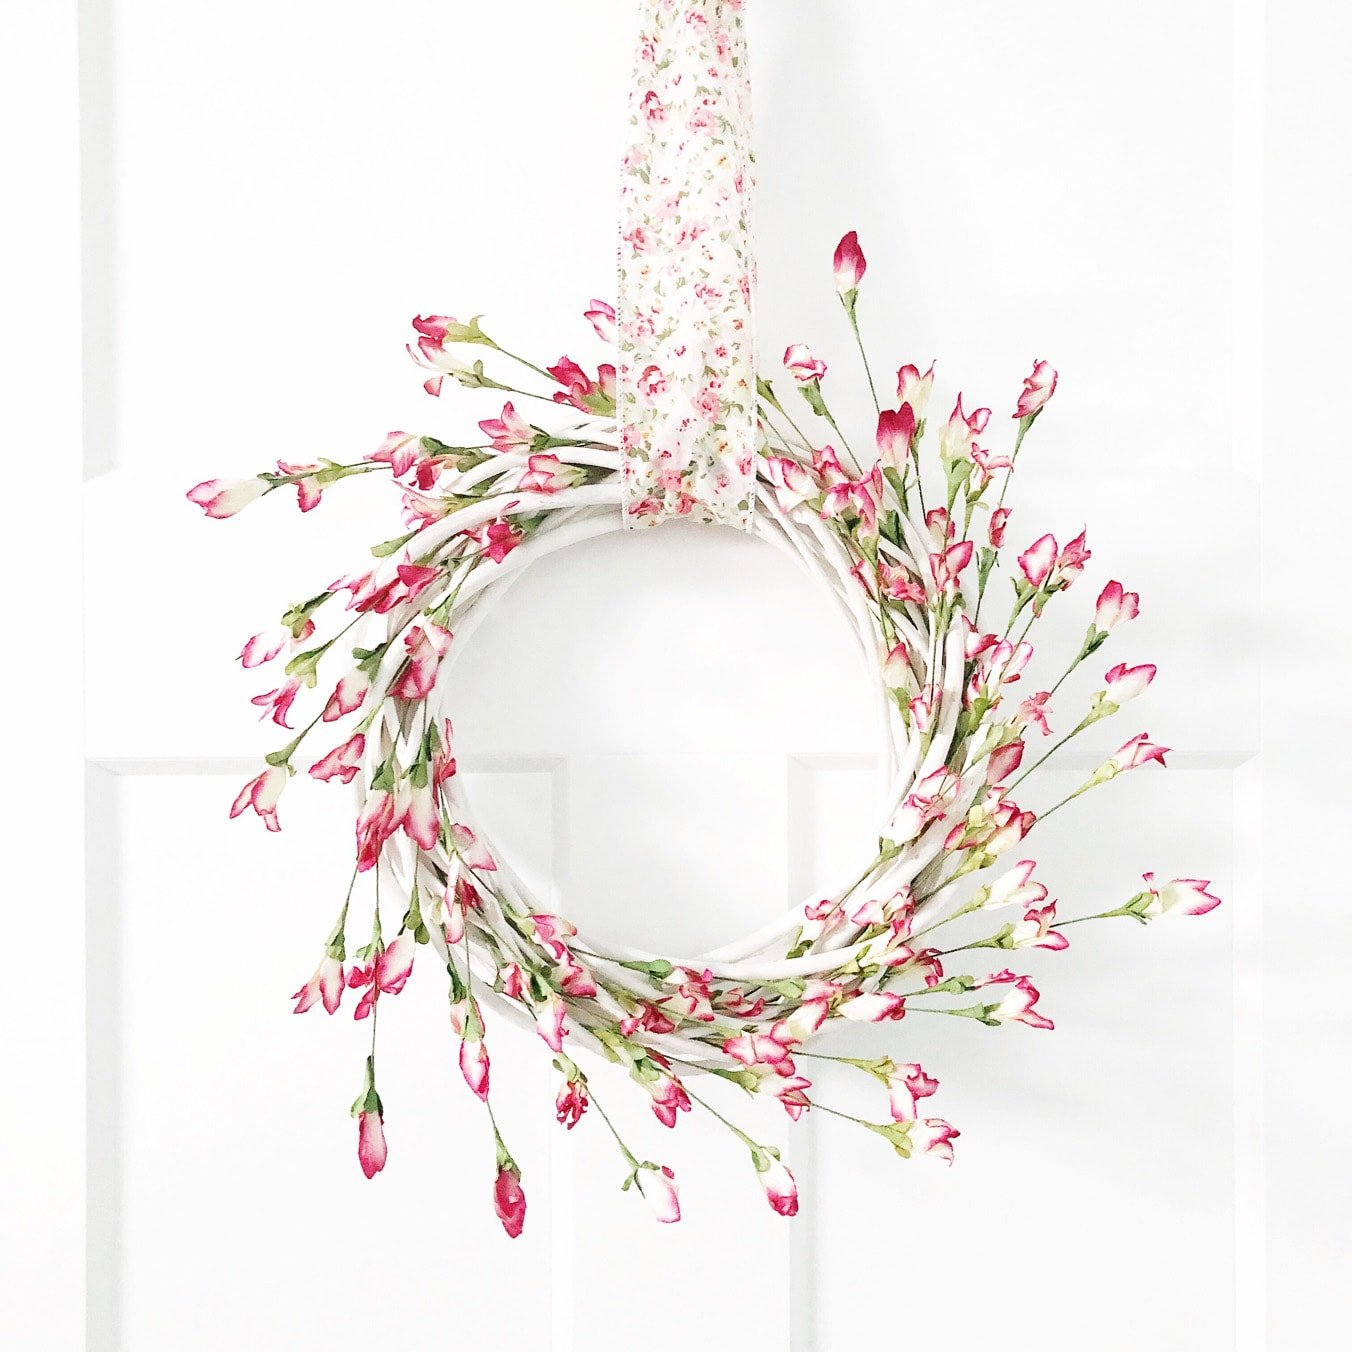 Simple and Pretty Spring Wreath